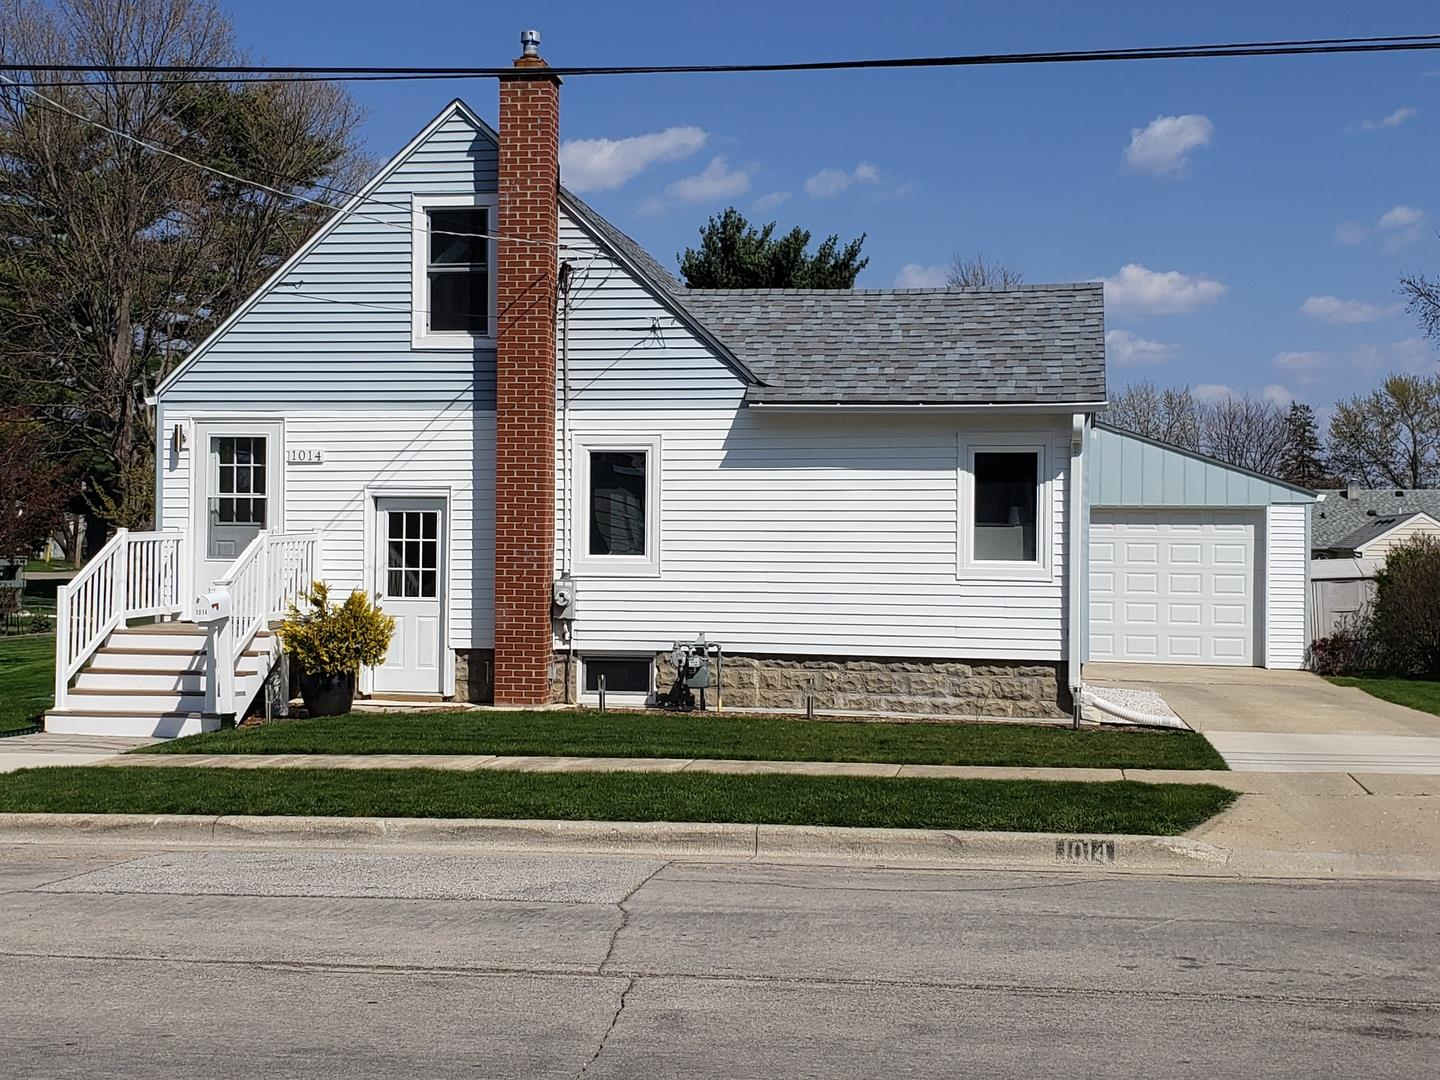 1014 Townsend Street, Sycamore, IL 60178 - #: 11078660